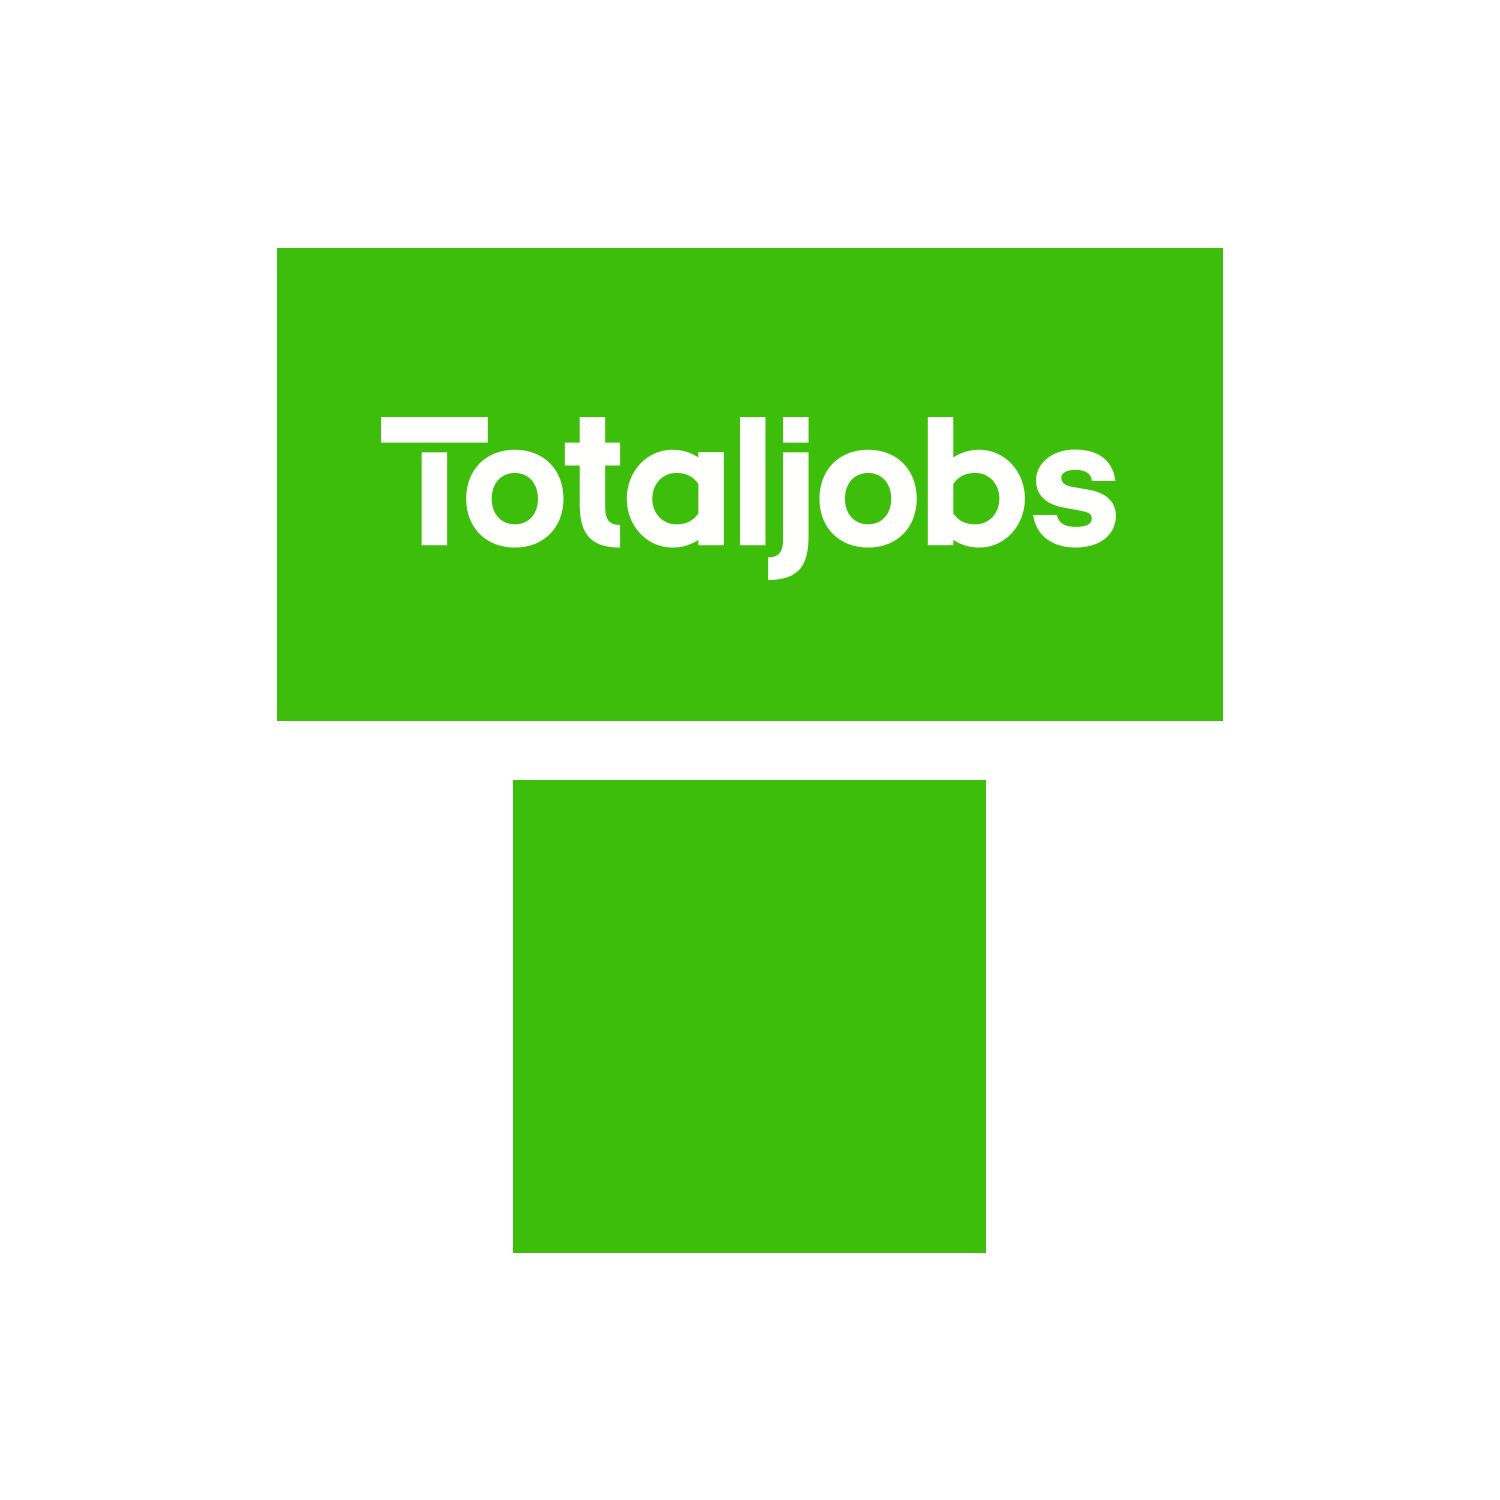 SEO Digital Marketing Executive in Warwick, Warwickshire | Charles Peters - totaljobs